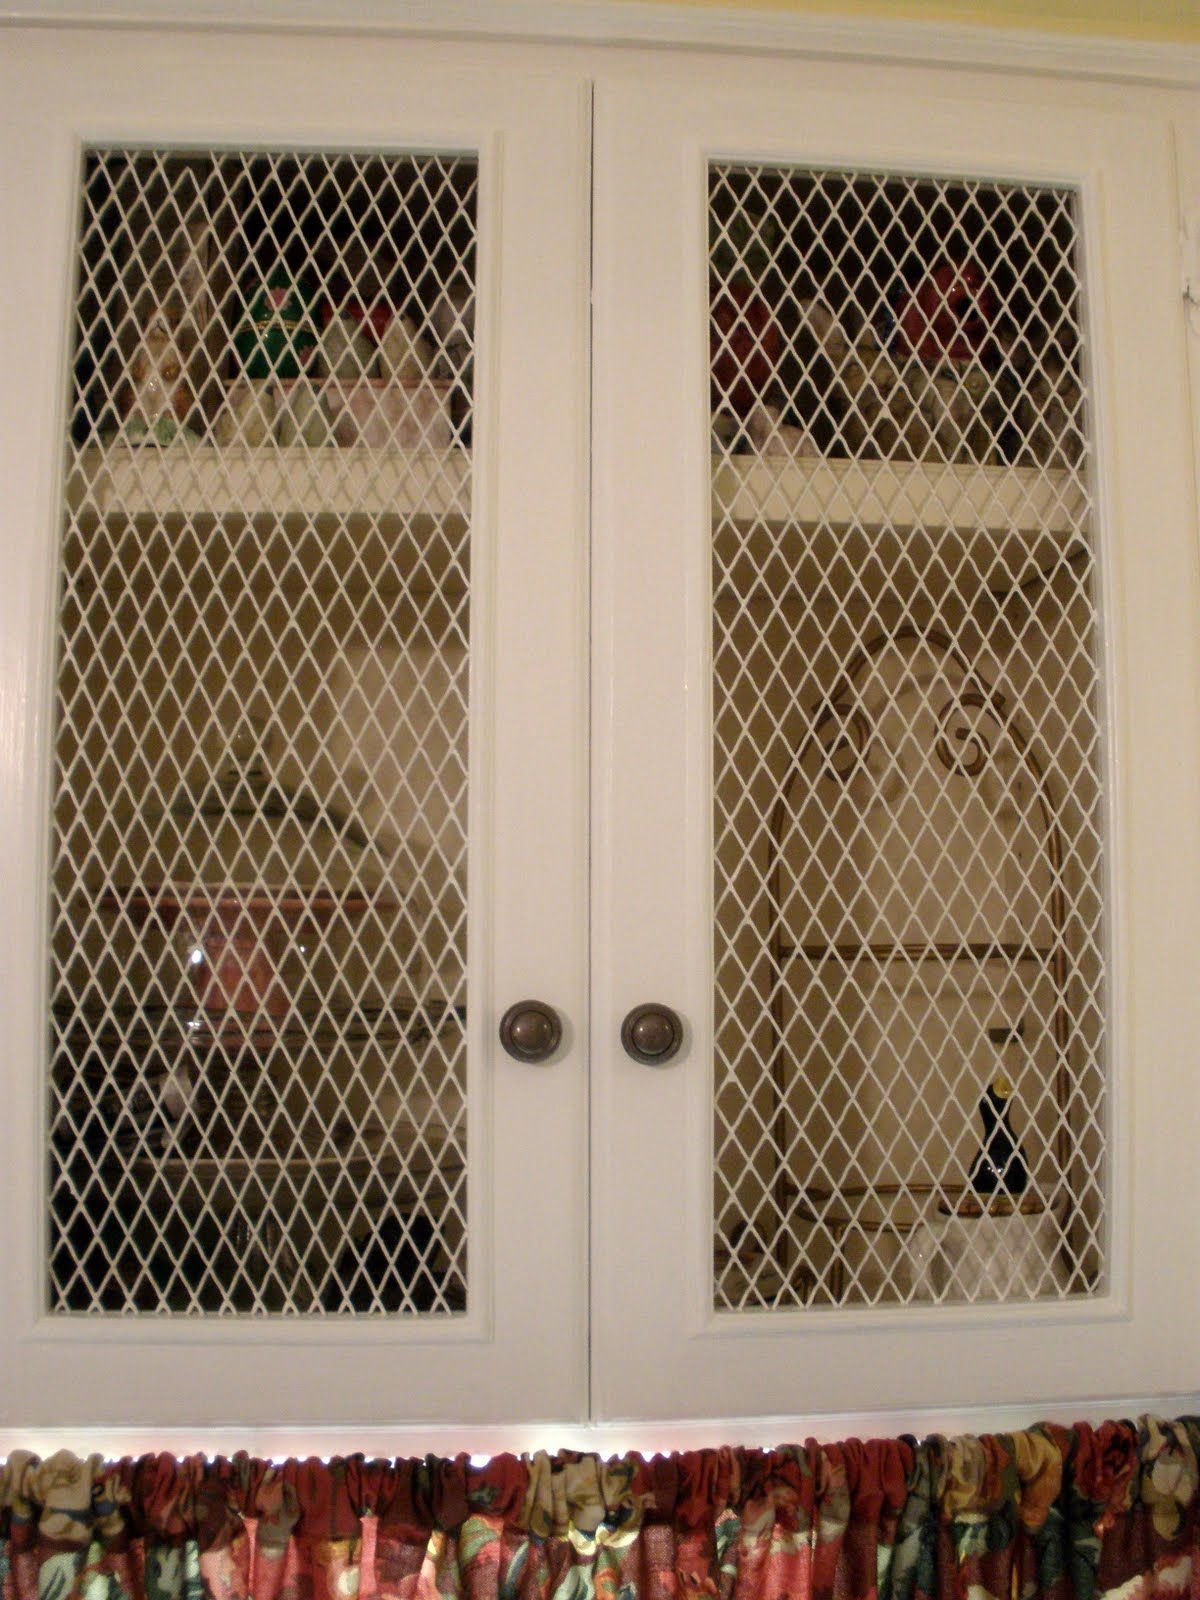 The Doors On Kitchen Cabinets with Chicken Wire | Note Songs: Still ...